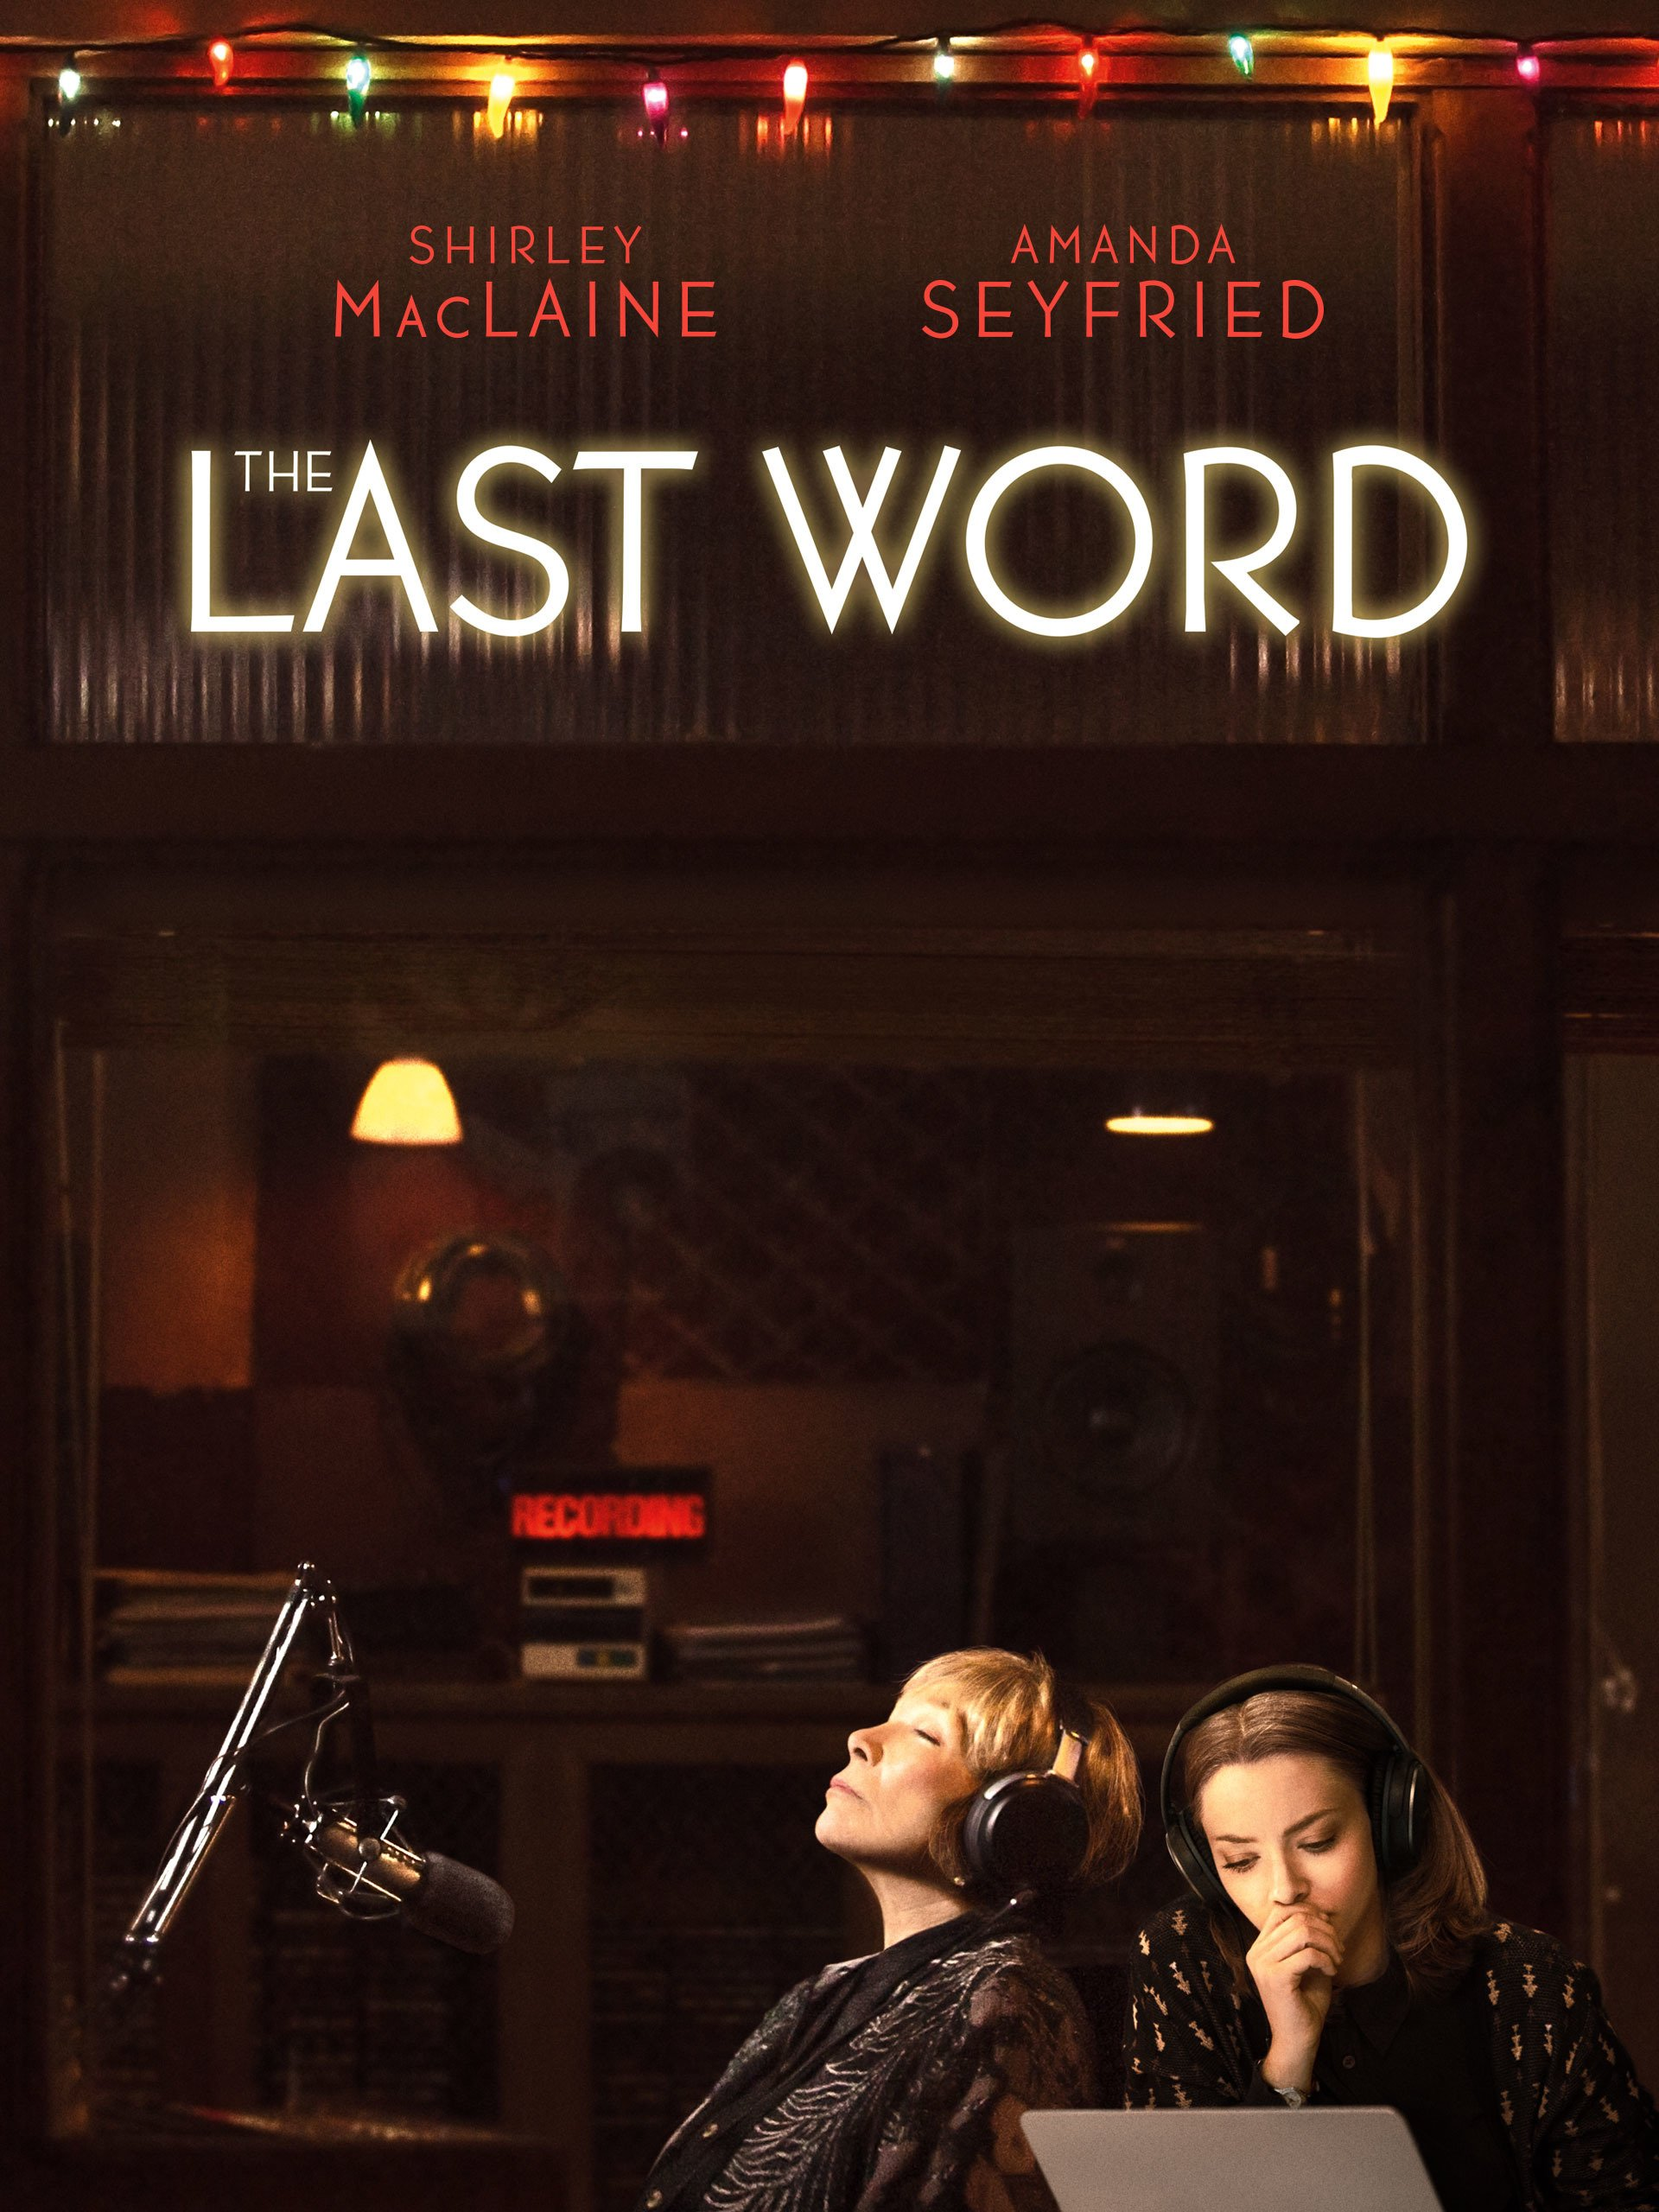 The Last Word by